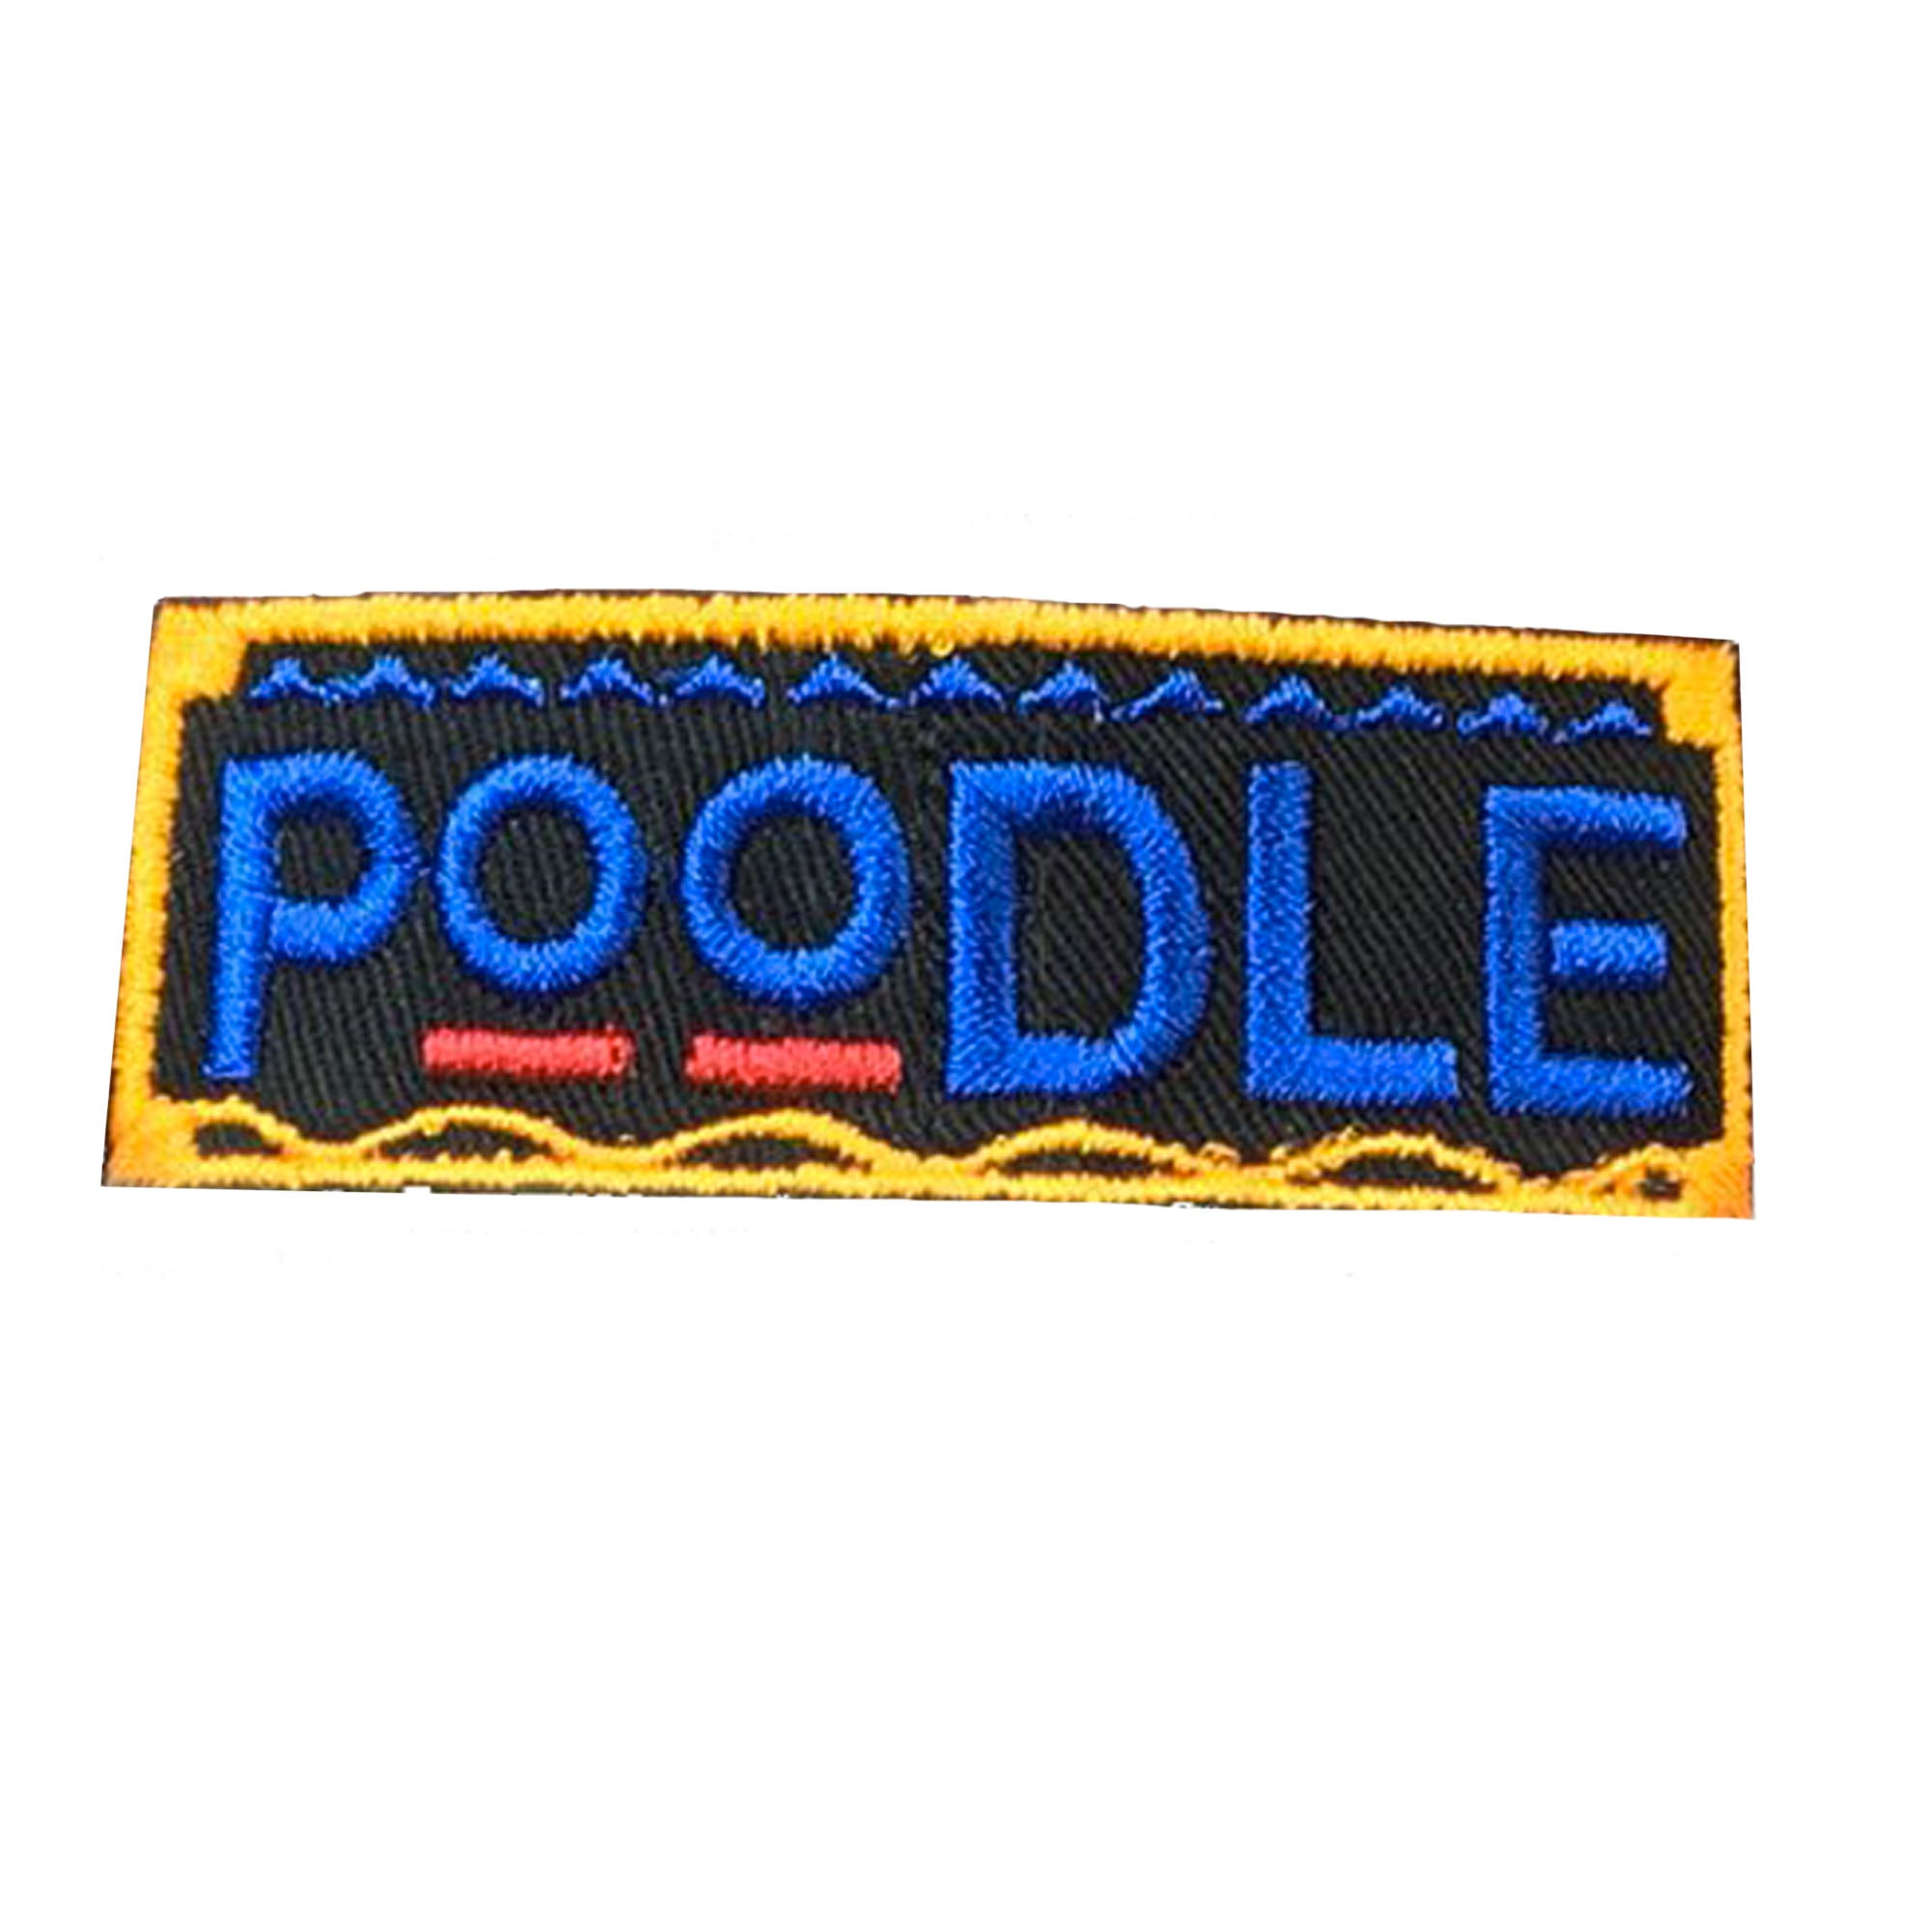 Poodle Retro Patch - The Carter Brand - Black By Popular Demand - Rooting For Everybody Black - Black Pride Apparel